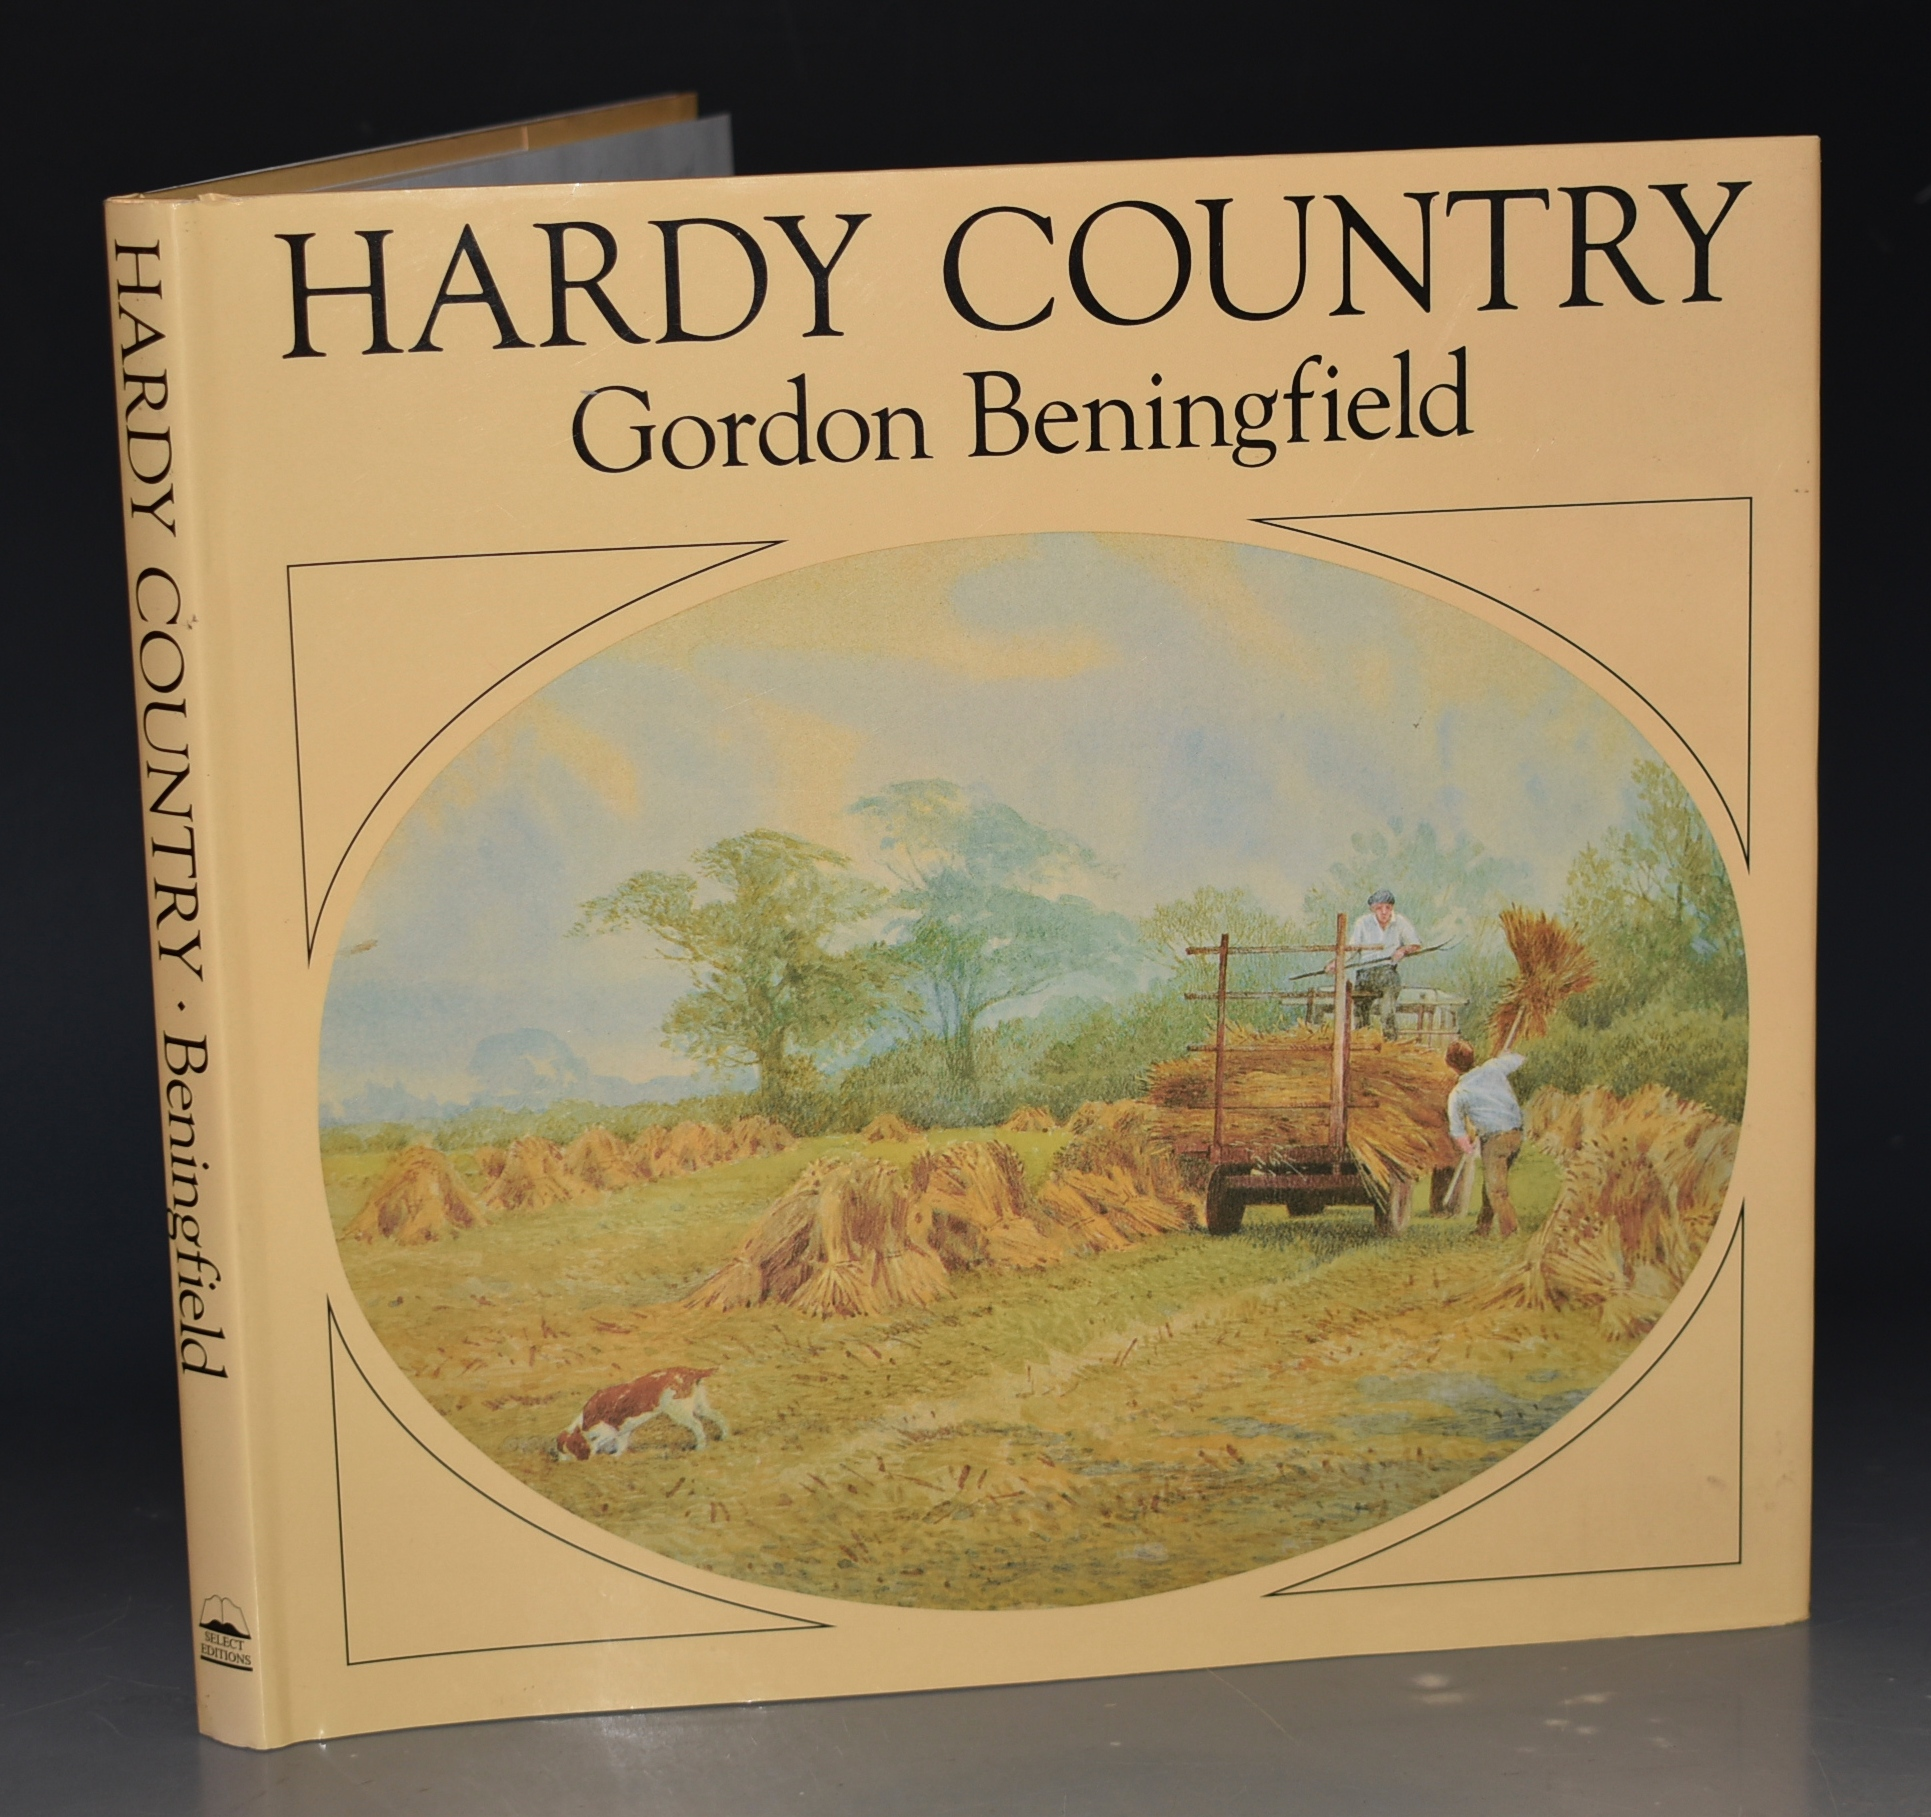 Image for Hardy Country. Introduction and Captions by Gordon Beningfield. Text by Anthea Zeman. SIGNED COPY.